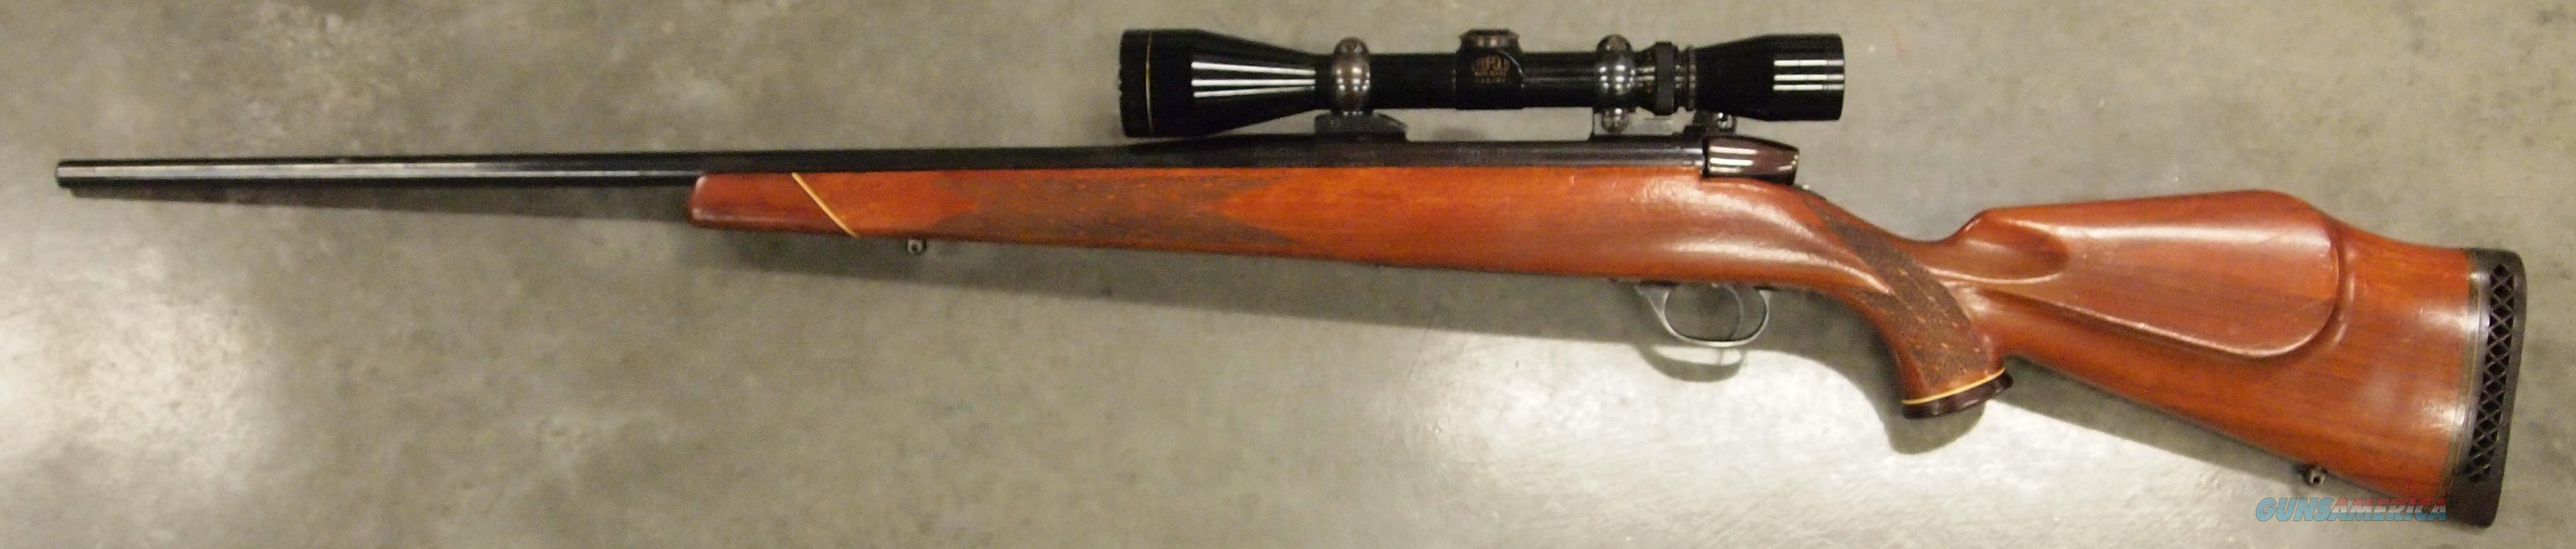 WEATHERBY MK V 300WBY, ( MFG GERMANY )  Guns > Rifles > Weatherby Rifles > Sporting